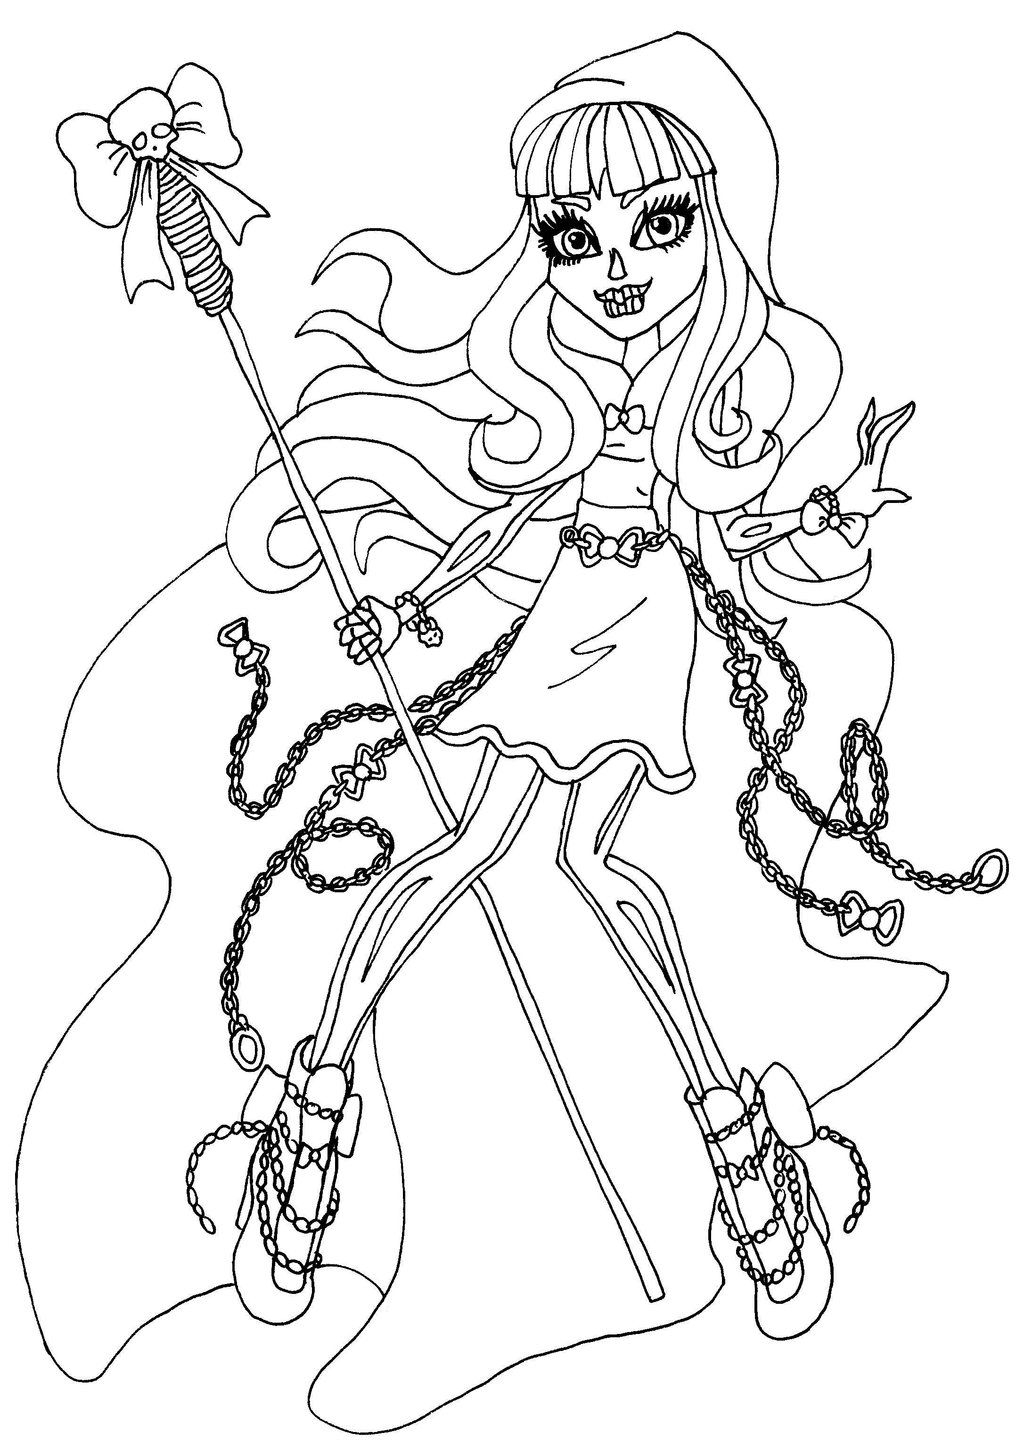 Best Monster High Coloring Pages Printable Print Color Craft Pic to Print Of Exquisite Monster High Printables Coloring Pages Free Gallery